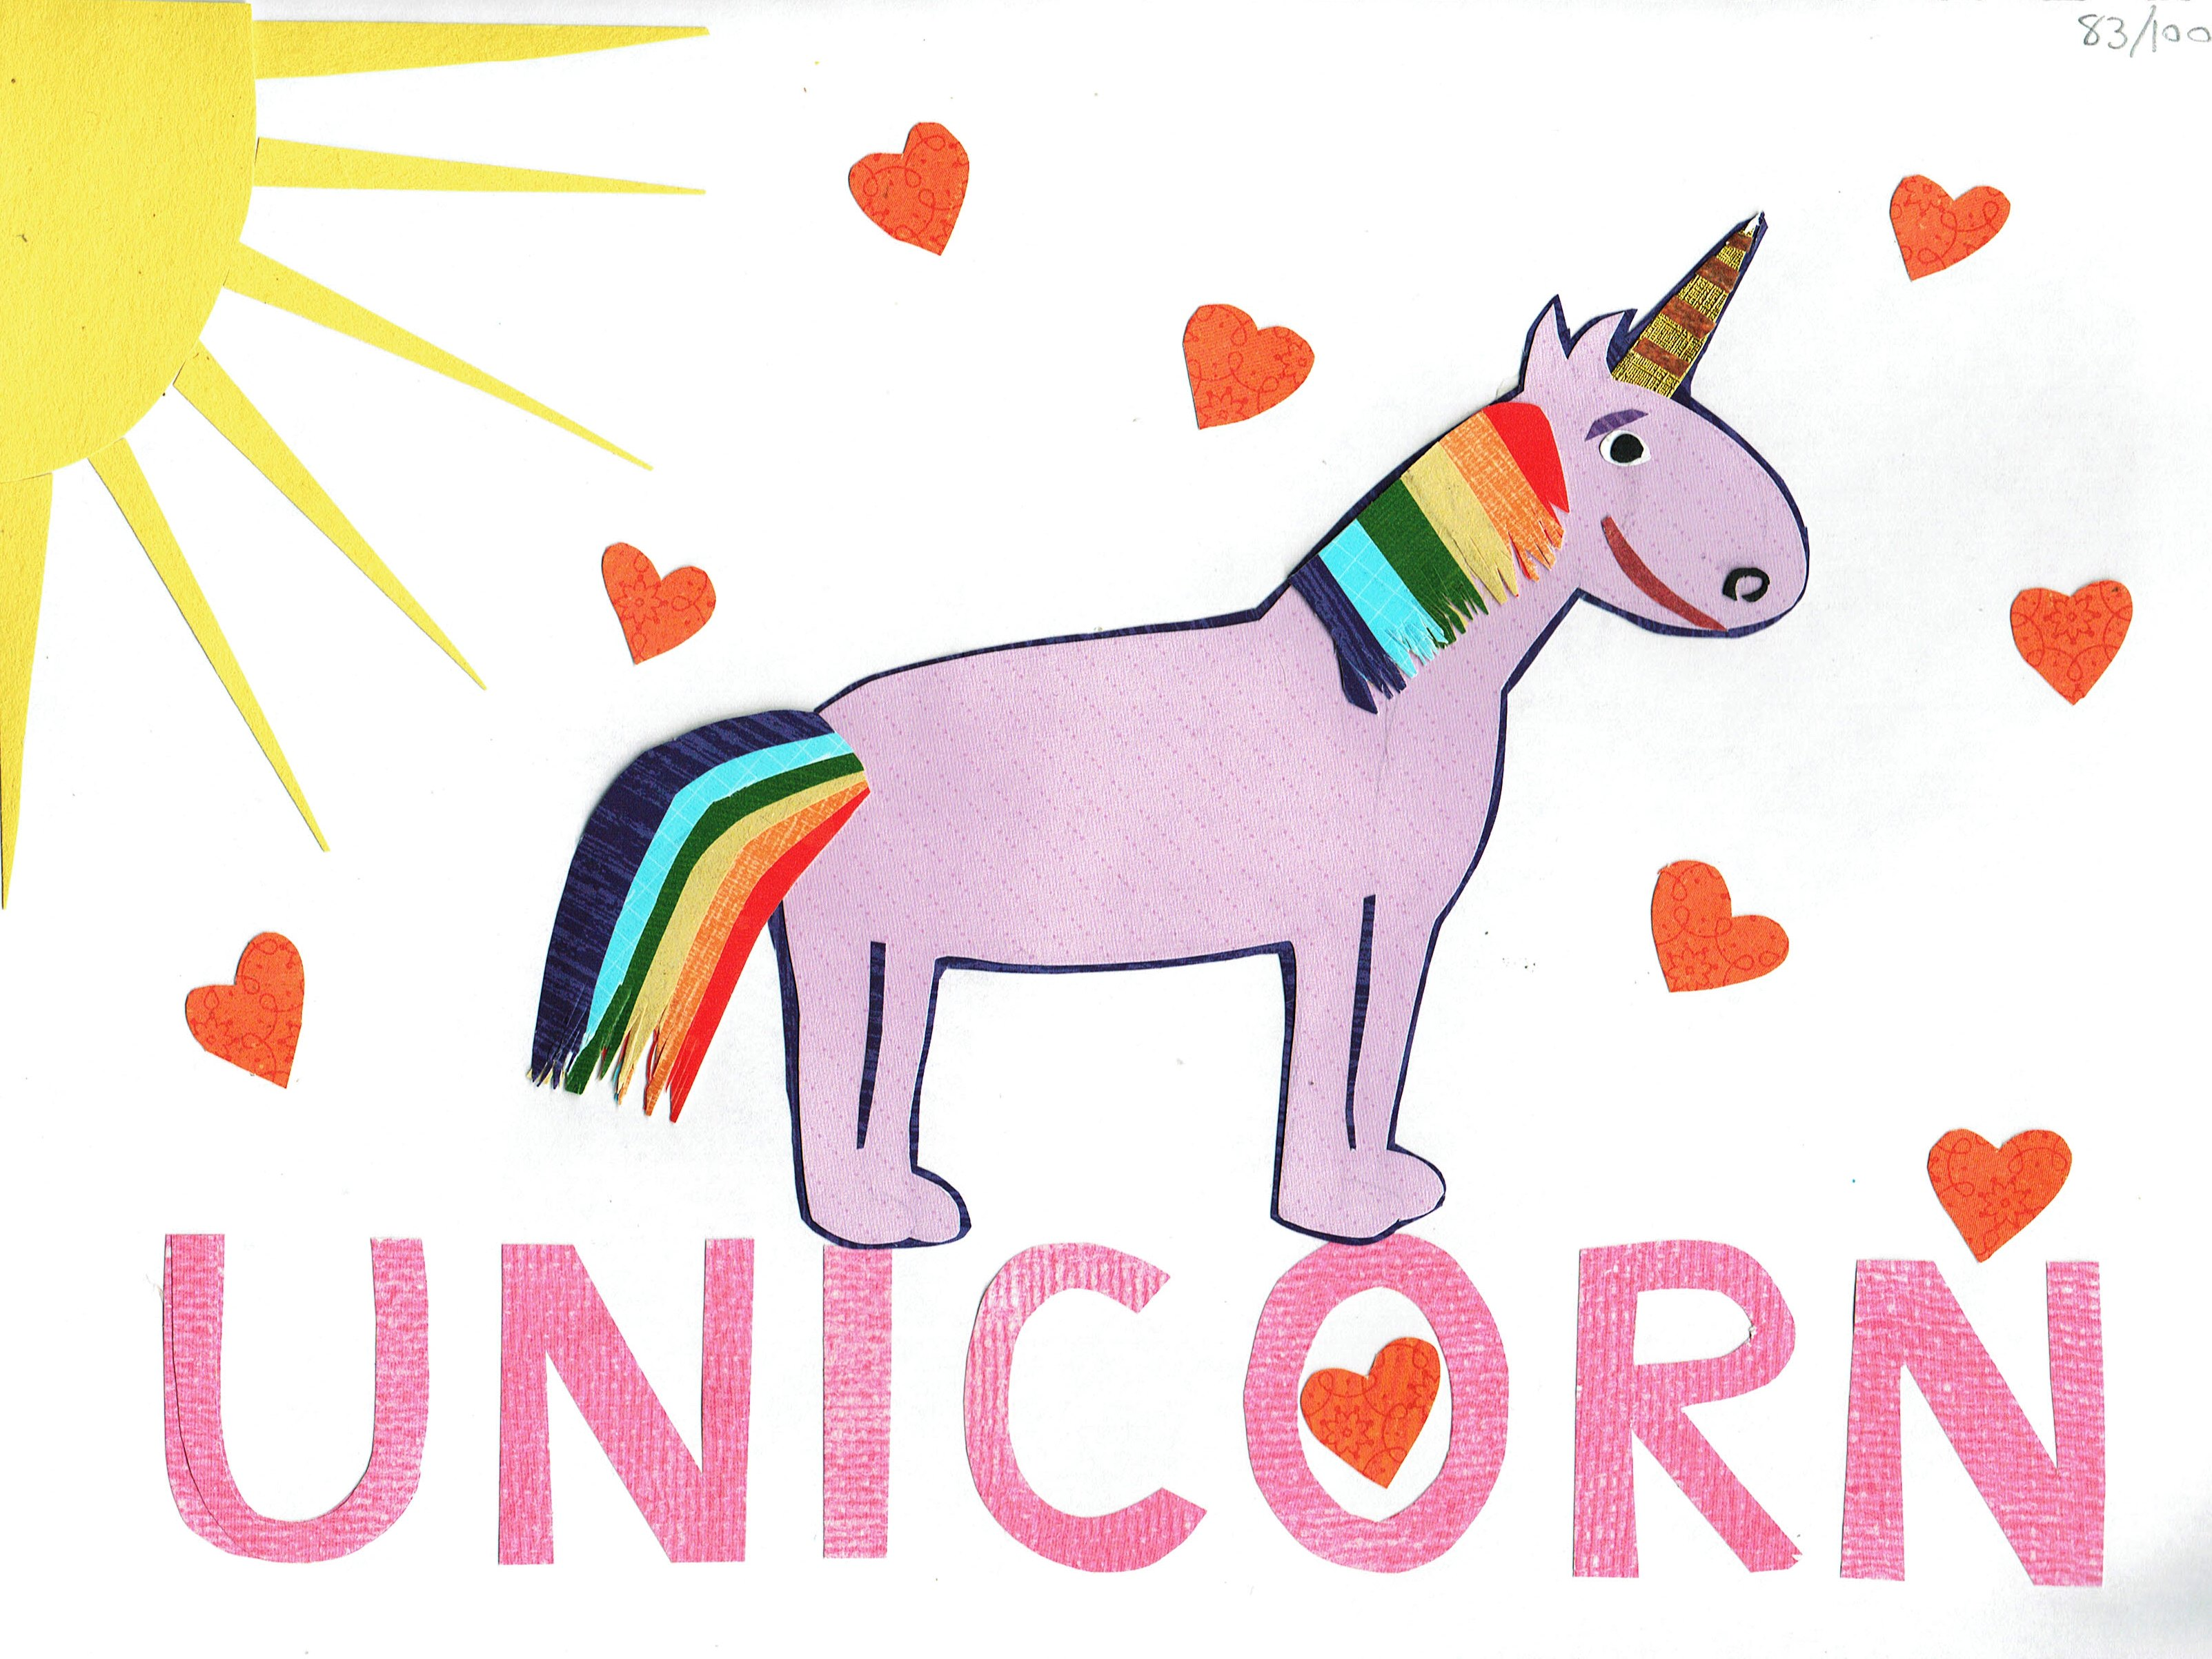 Day 83 - Unicorn